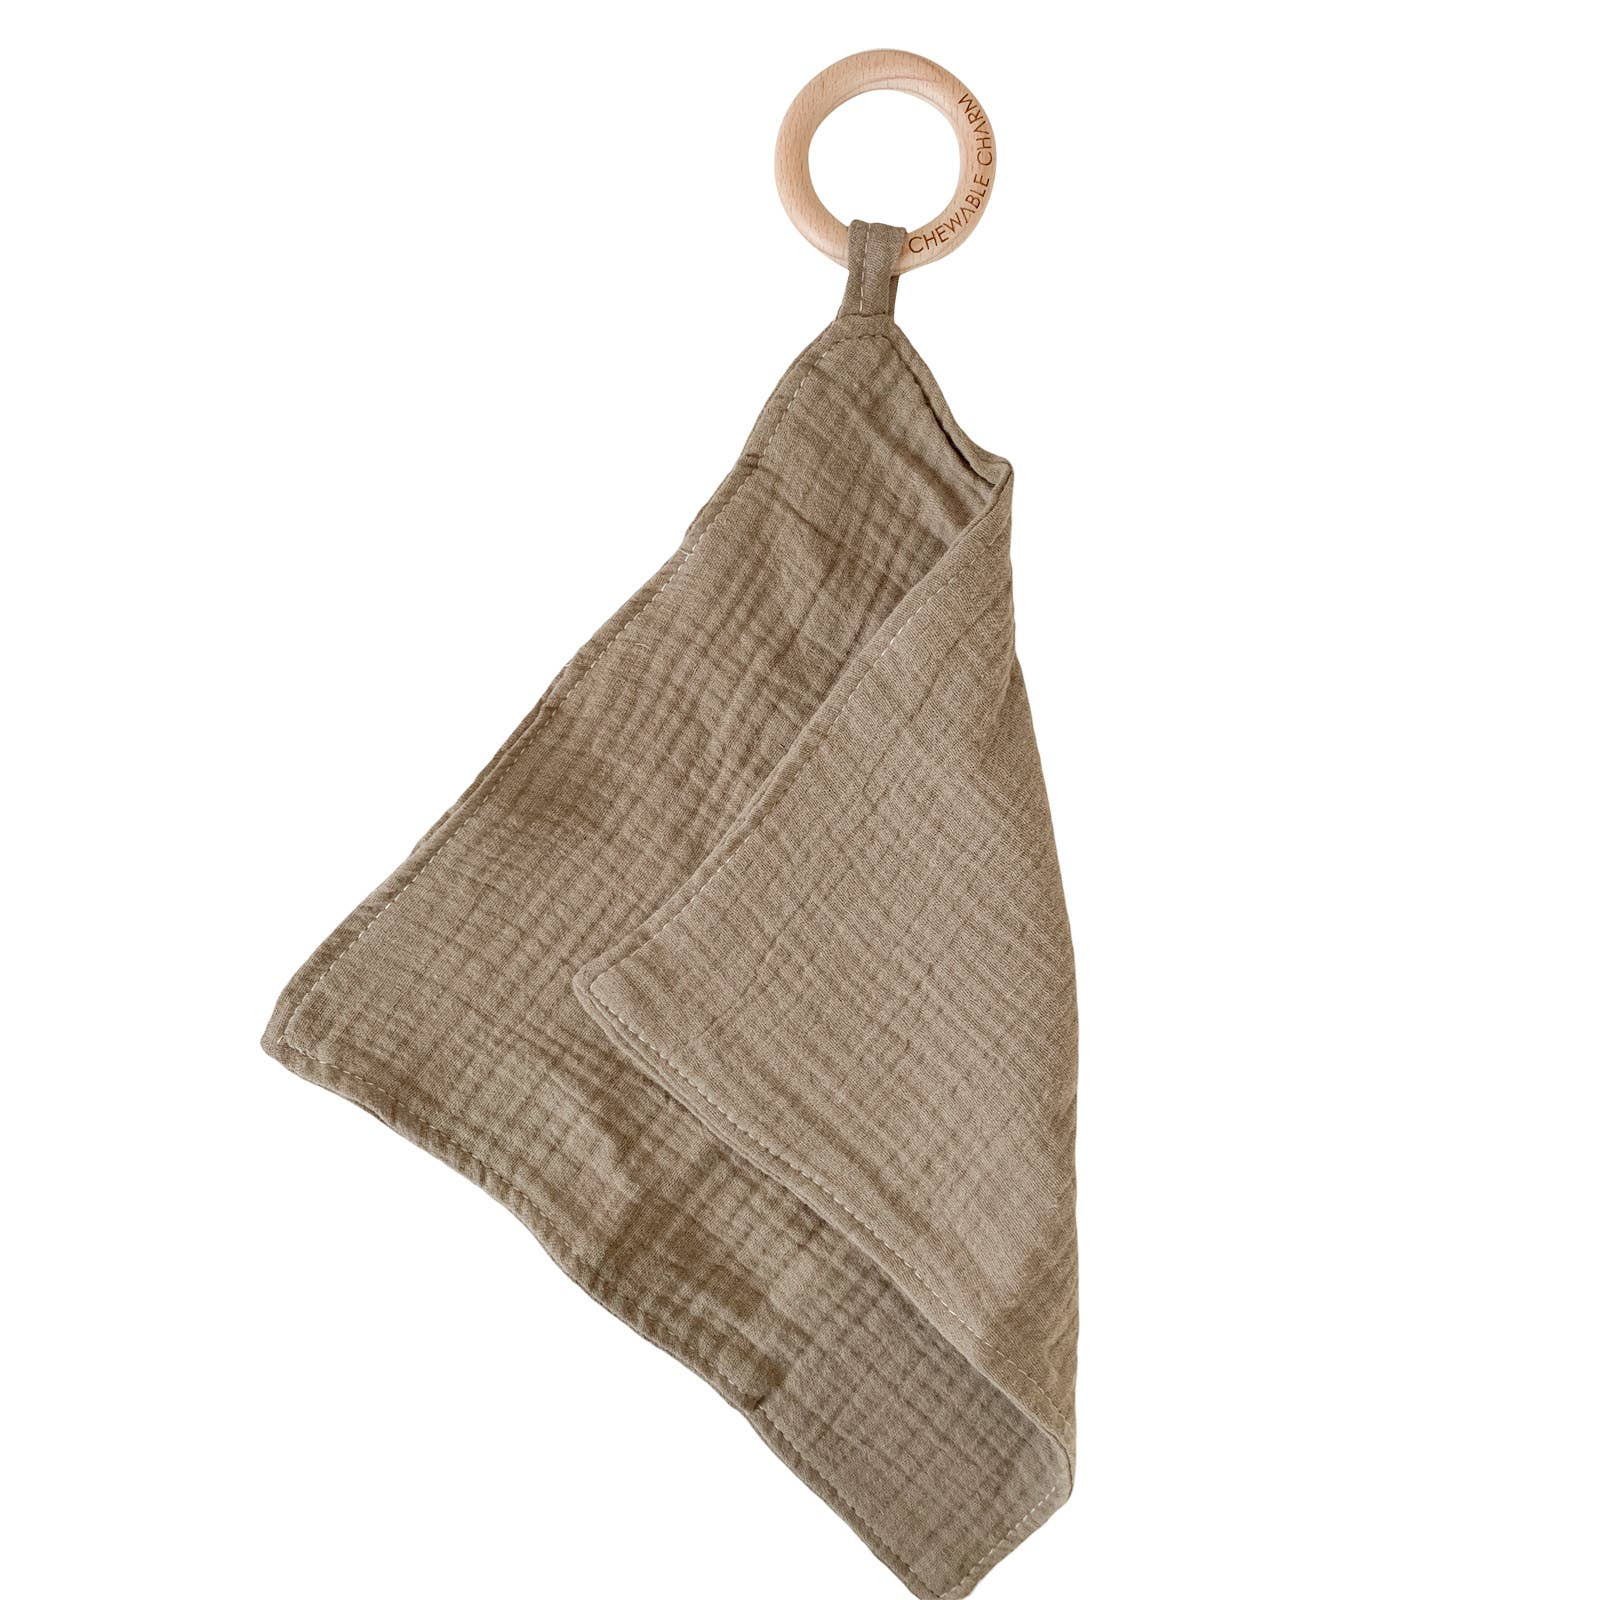 Chewable Charm Muslin Teething Ring- Flax CCWT12